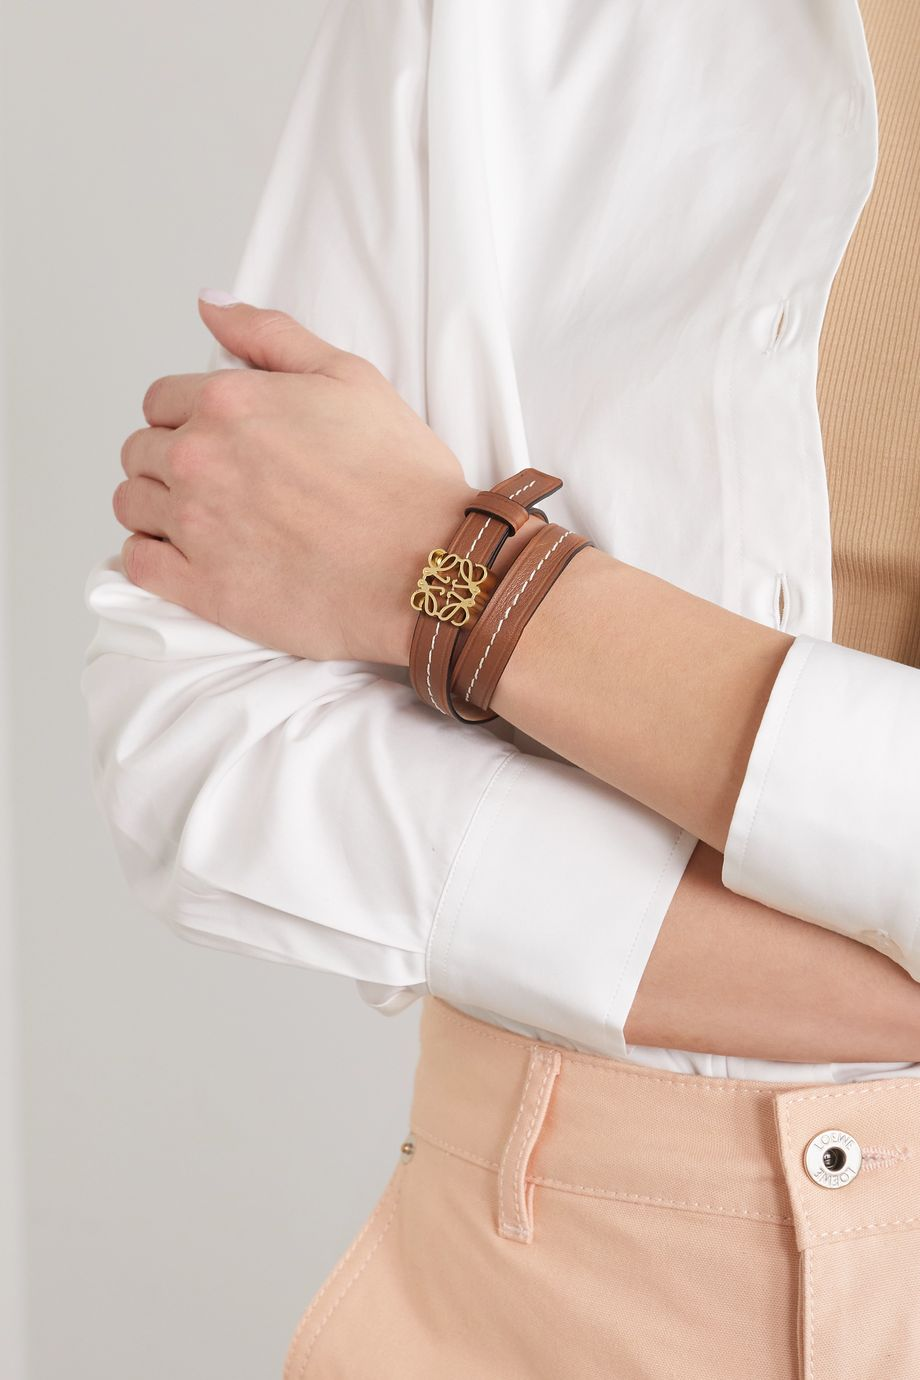 Loewe Anagram embellished leather bracelet